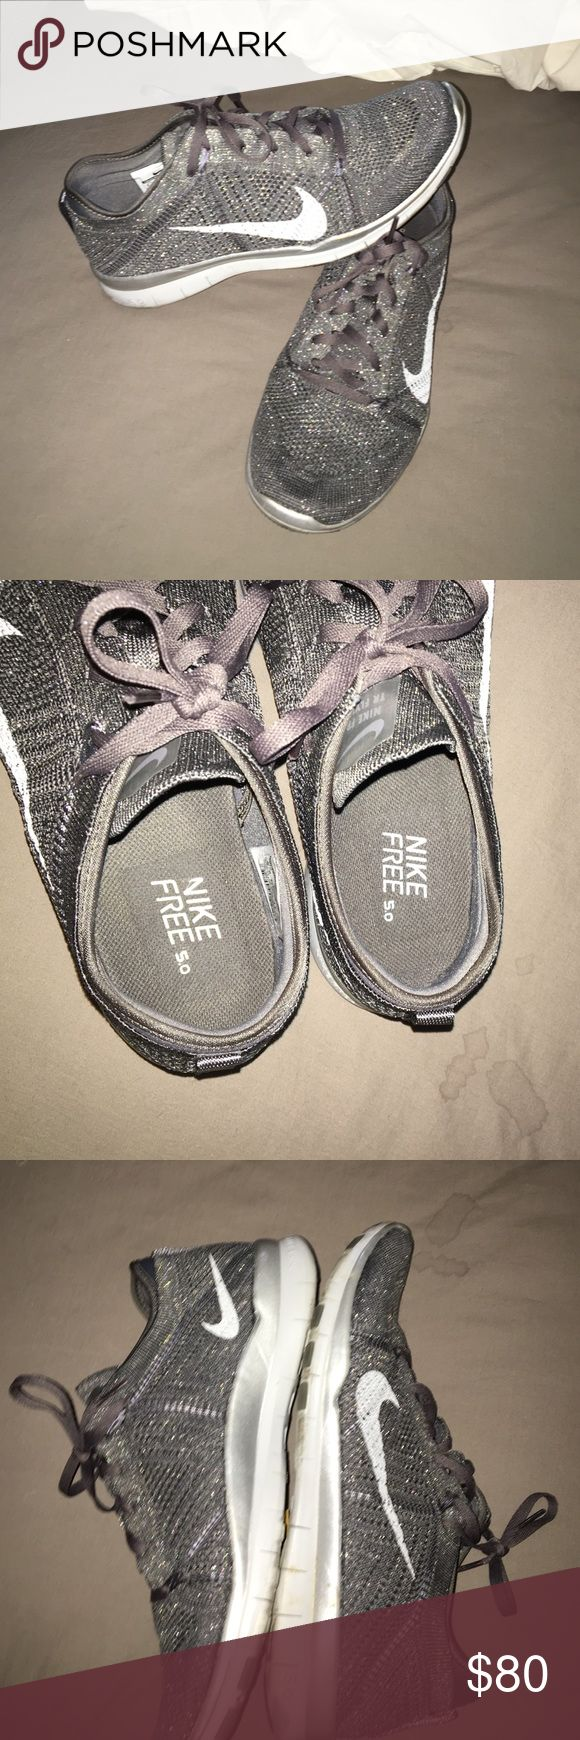 Nike free 5.0 flynit running shoes Got these from the Nike outlet store. Have only been worn once. Super cute light weight shoes. Grey with silver sparkles. Amazing condition Nike Shoes Athletic Shoes